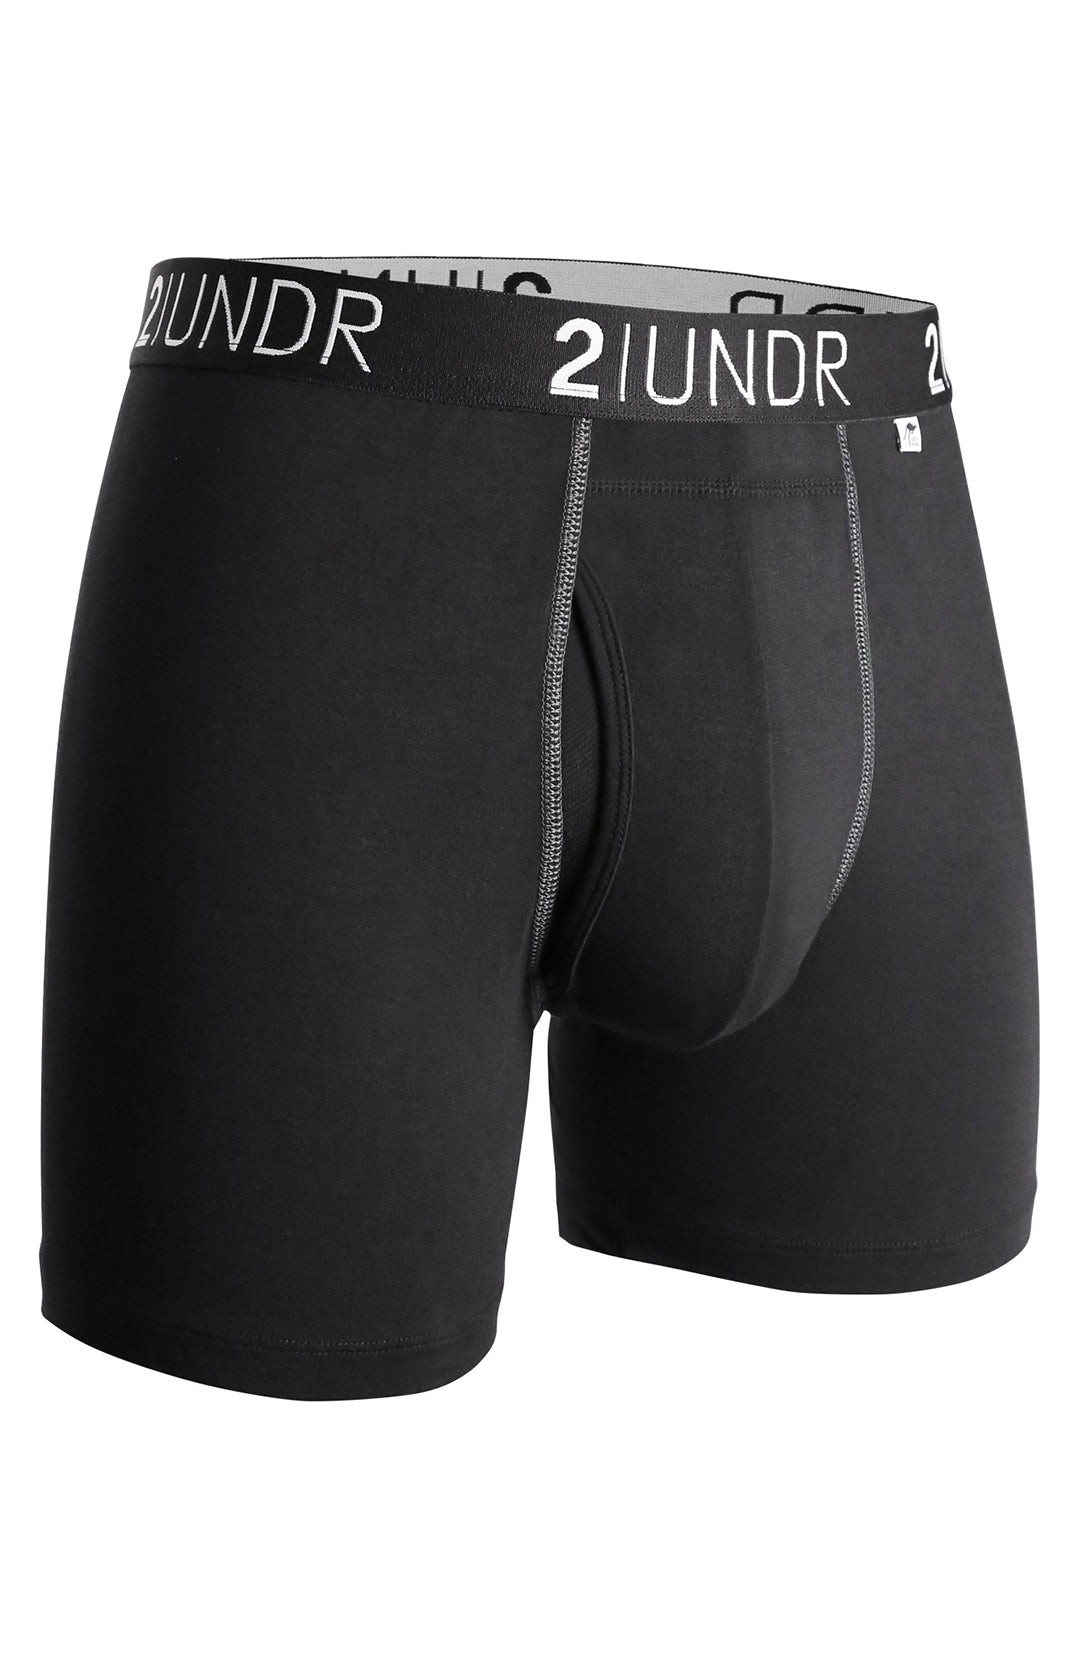 "SWING SHIFT 6"" BOXER BRIEF - BLACK/GREY"